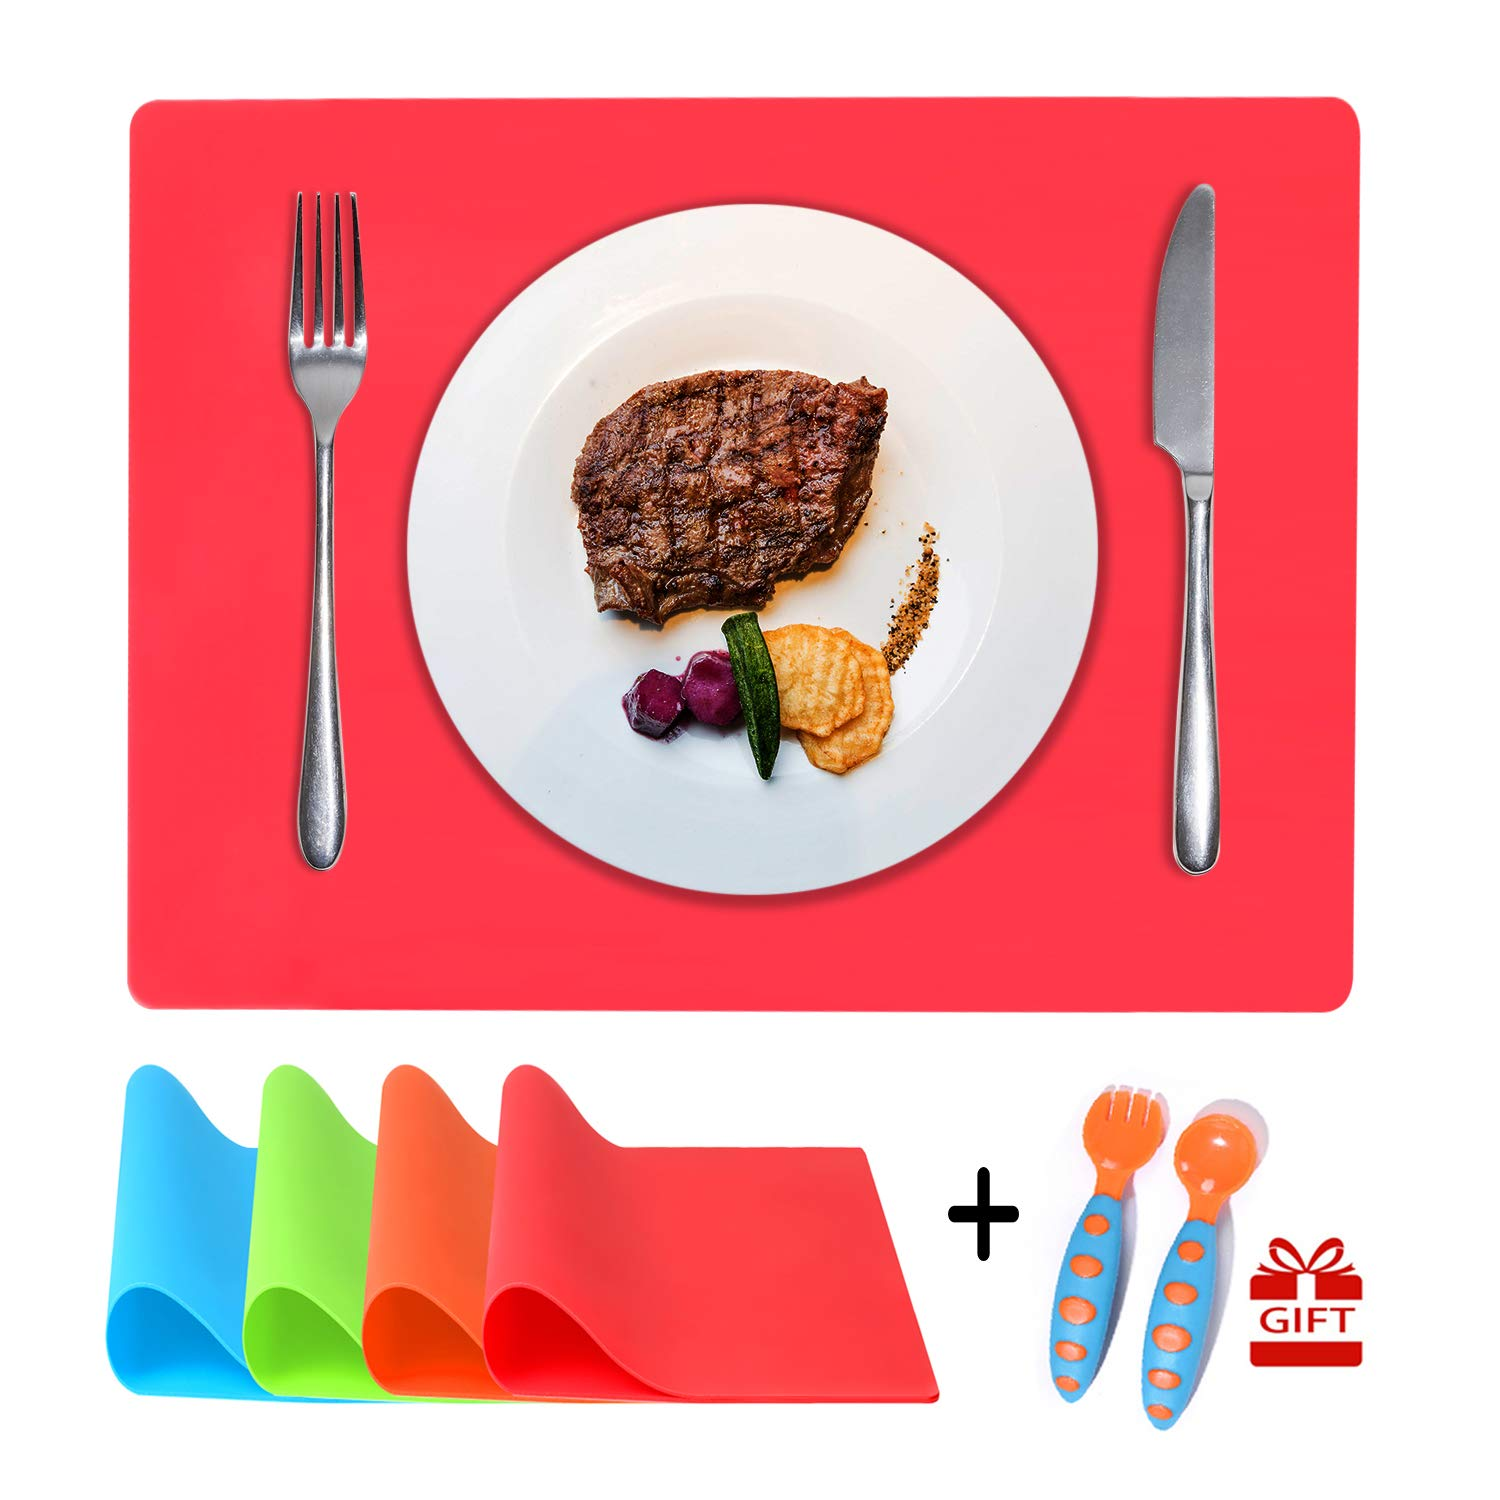 Multi Color Kids Placemats, Childrens Placemats Bonus Spoon & Fork (16 x 12 Inches), Dining Table Mat for Babies Toddlers and Kids, Non Slip, Waterproof, Easy to Clean, Set of 4